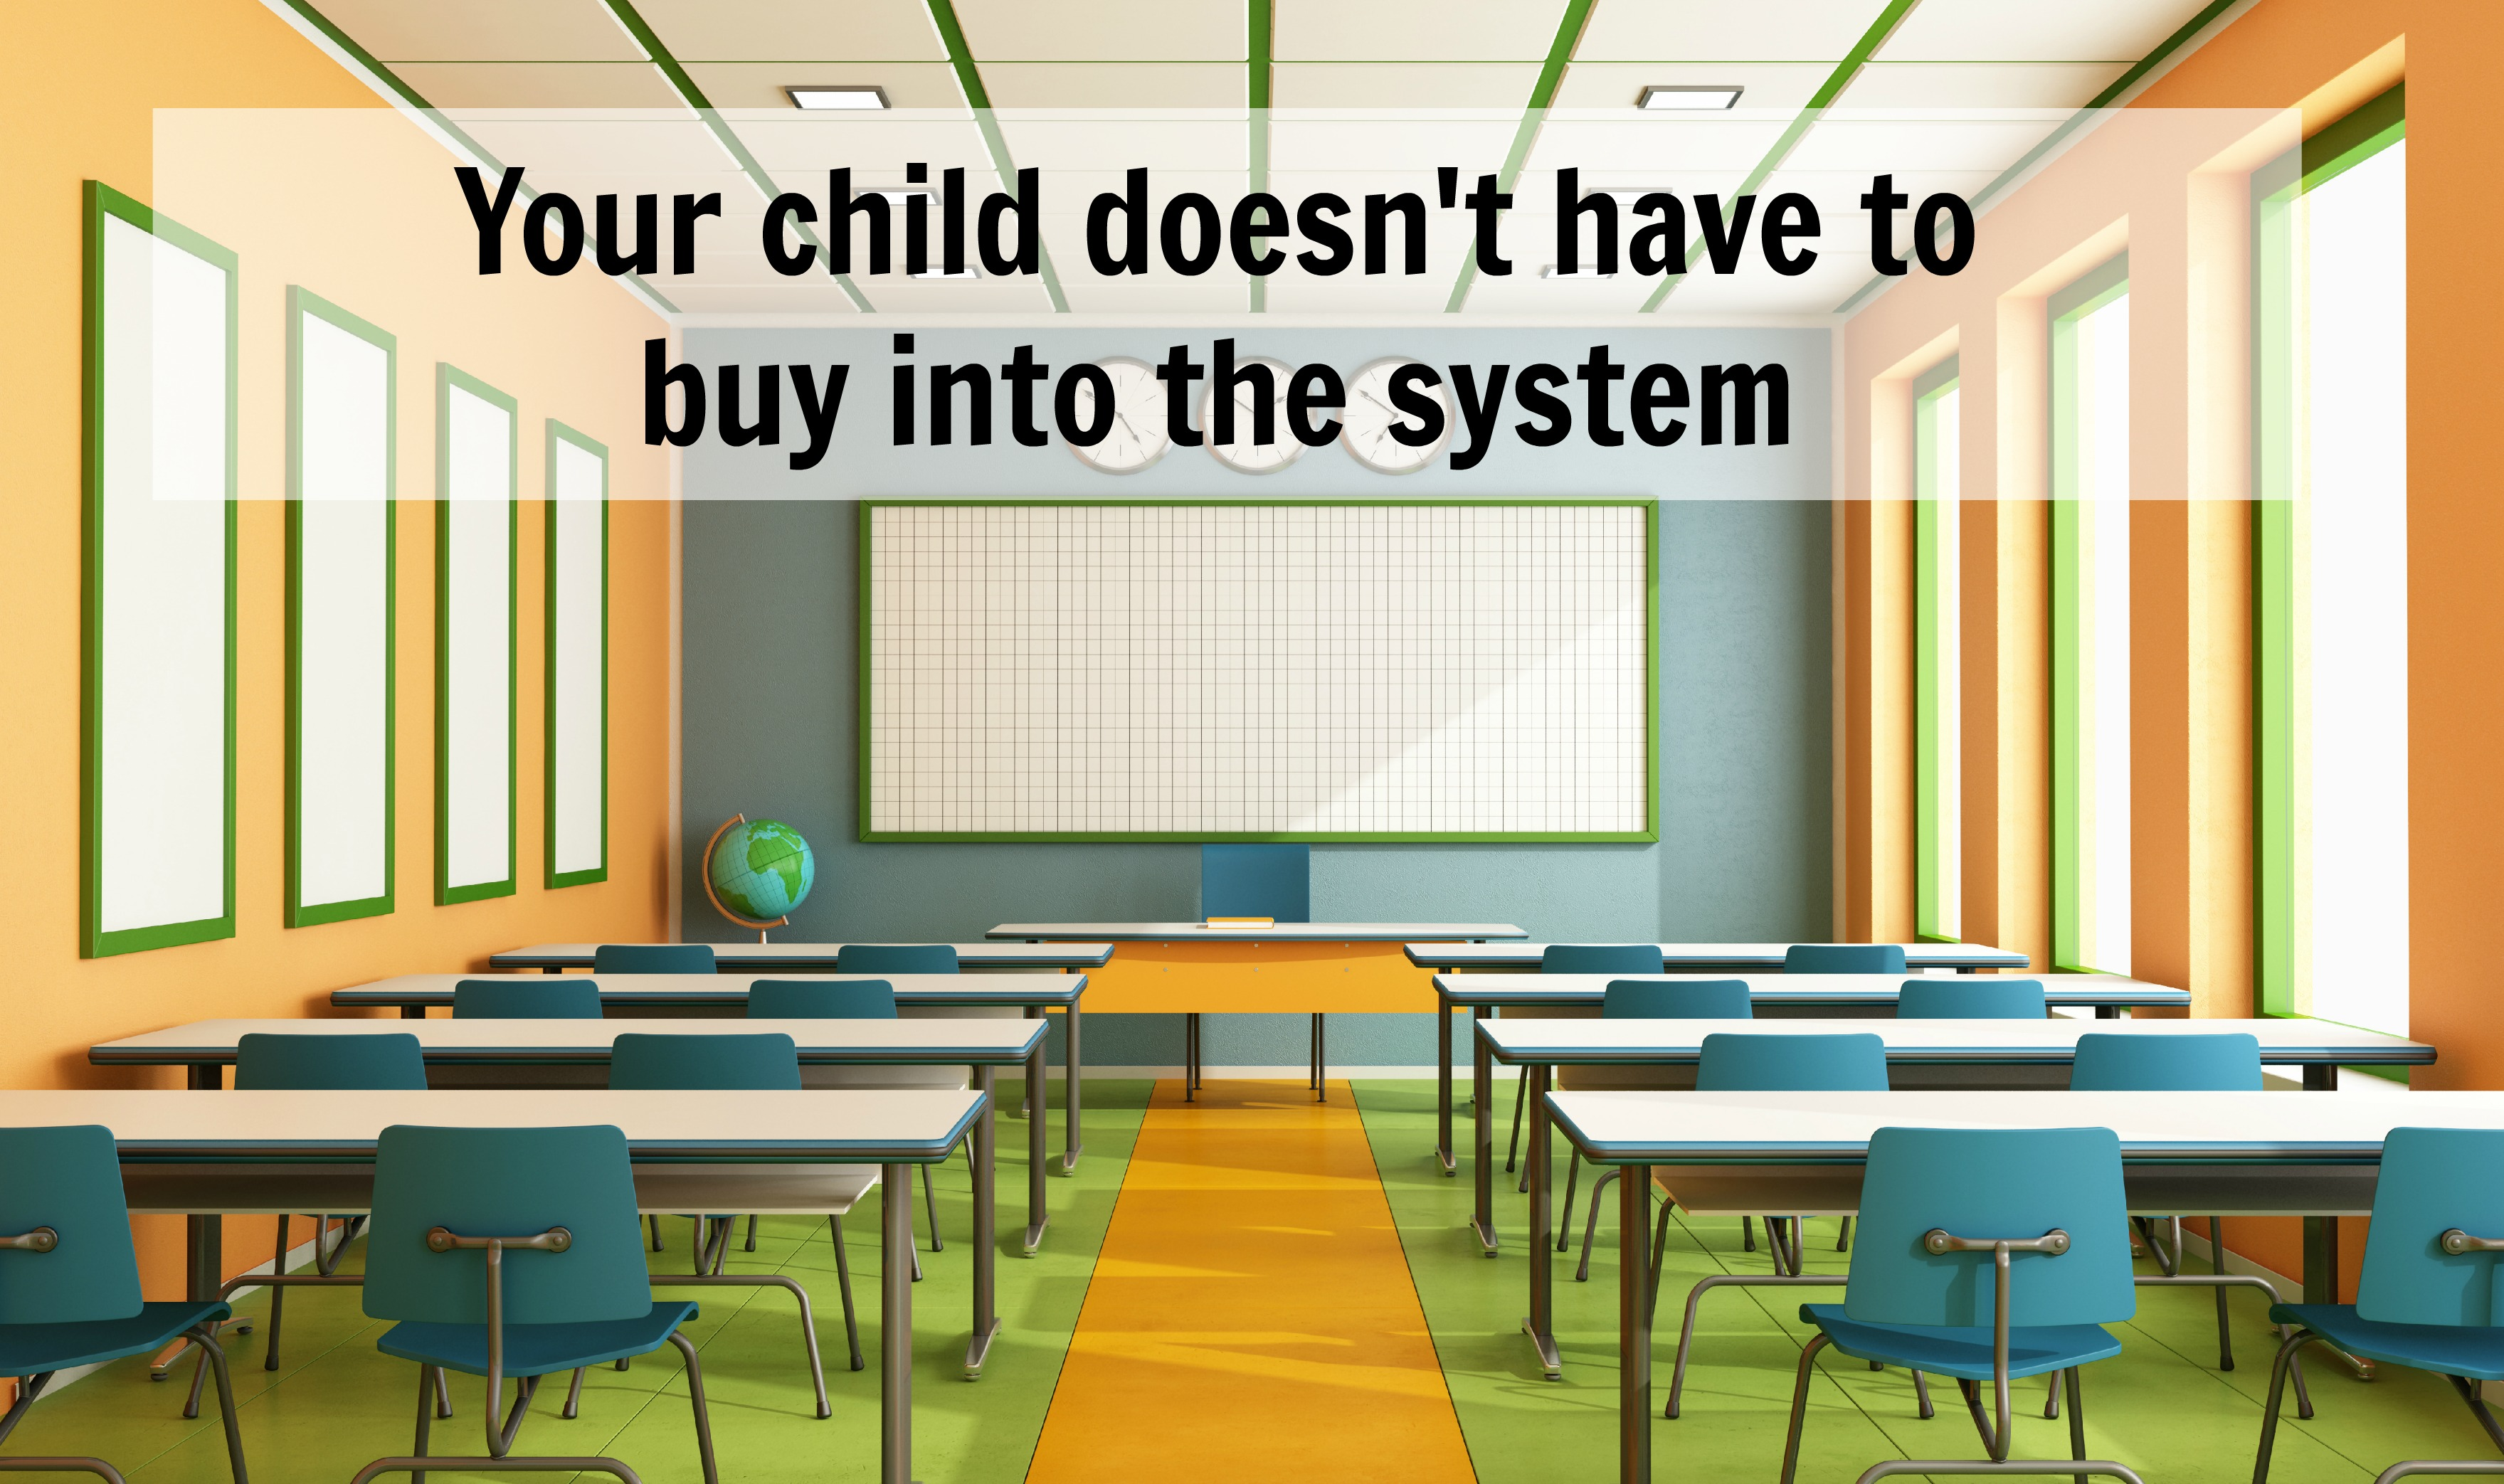 Your child doesn't have to buy into the system